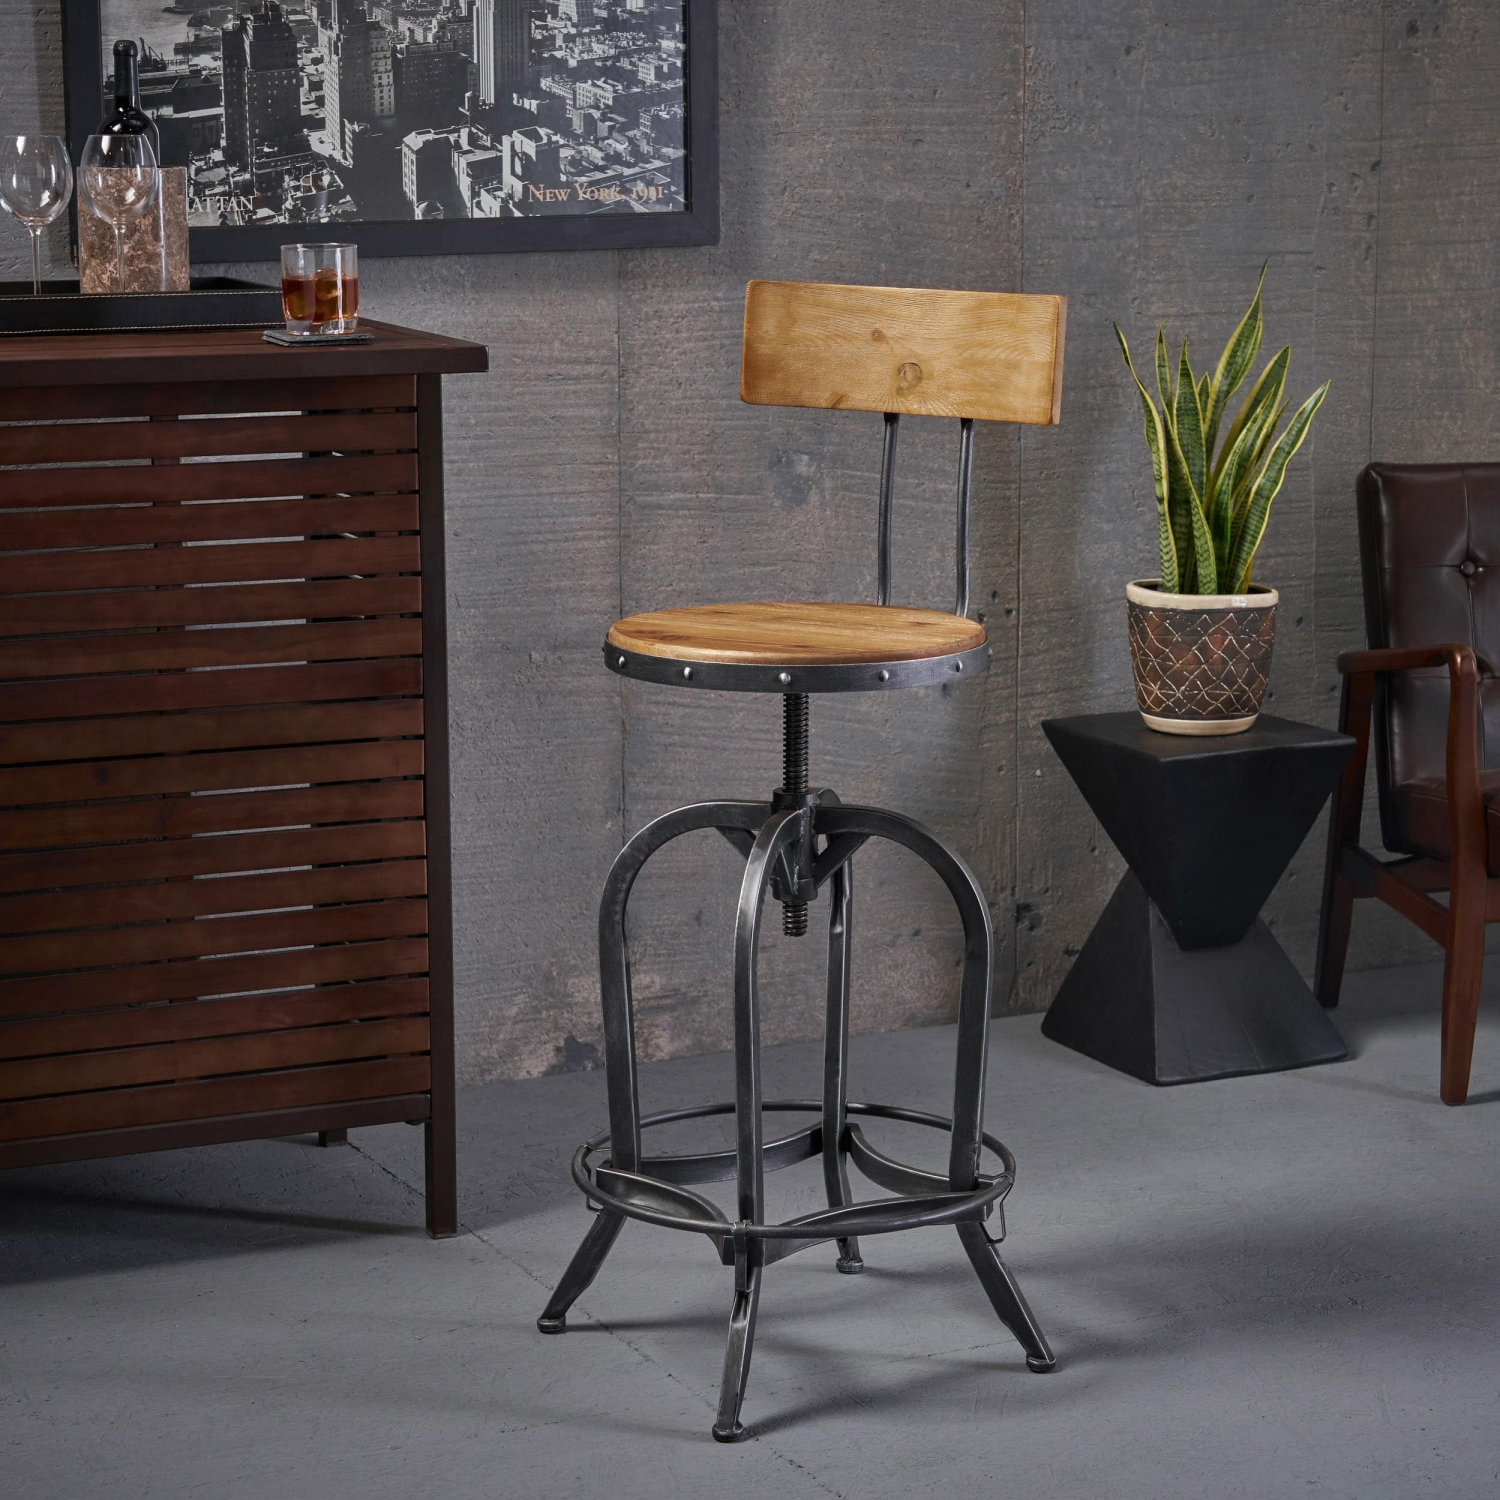 Pleasing Details About Iron Bar Stool Adjustable Seat High Back Swivel Chair Dining Kitchen Counter Pub Dailytribune Chair Design For Home Dailytribuneorg